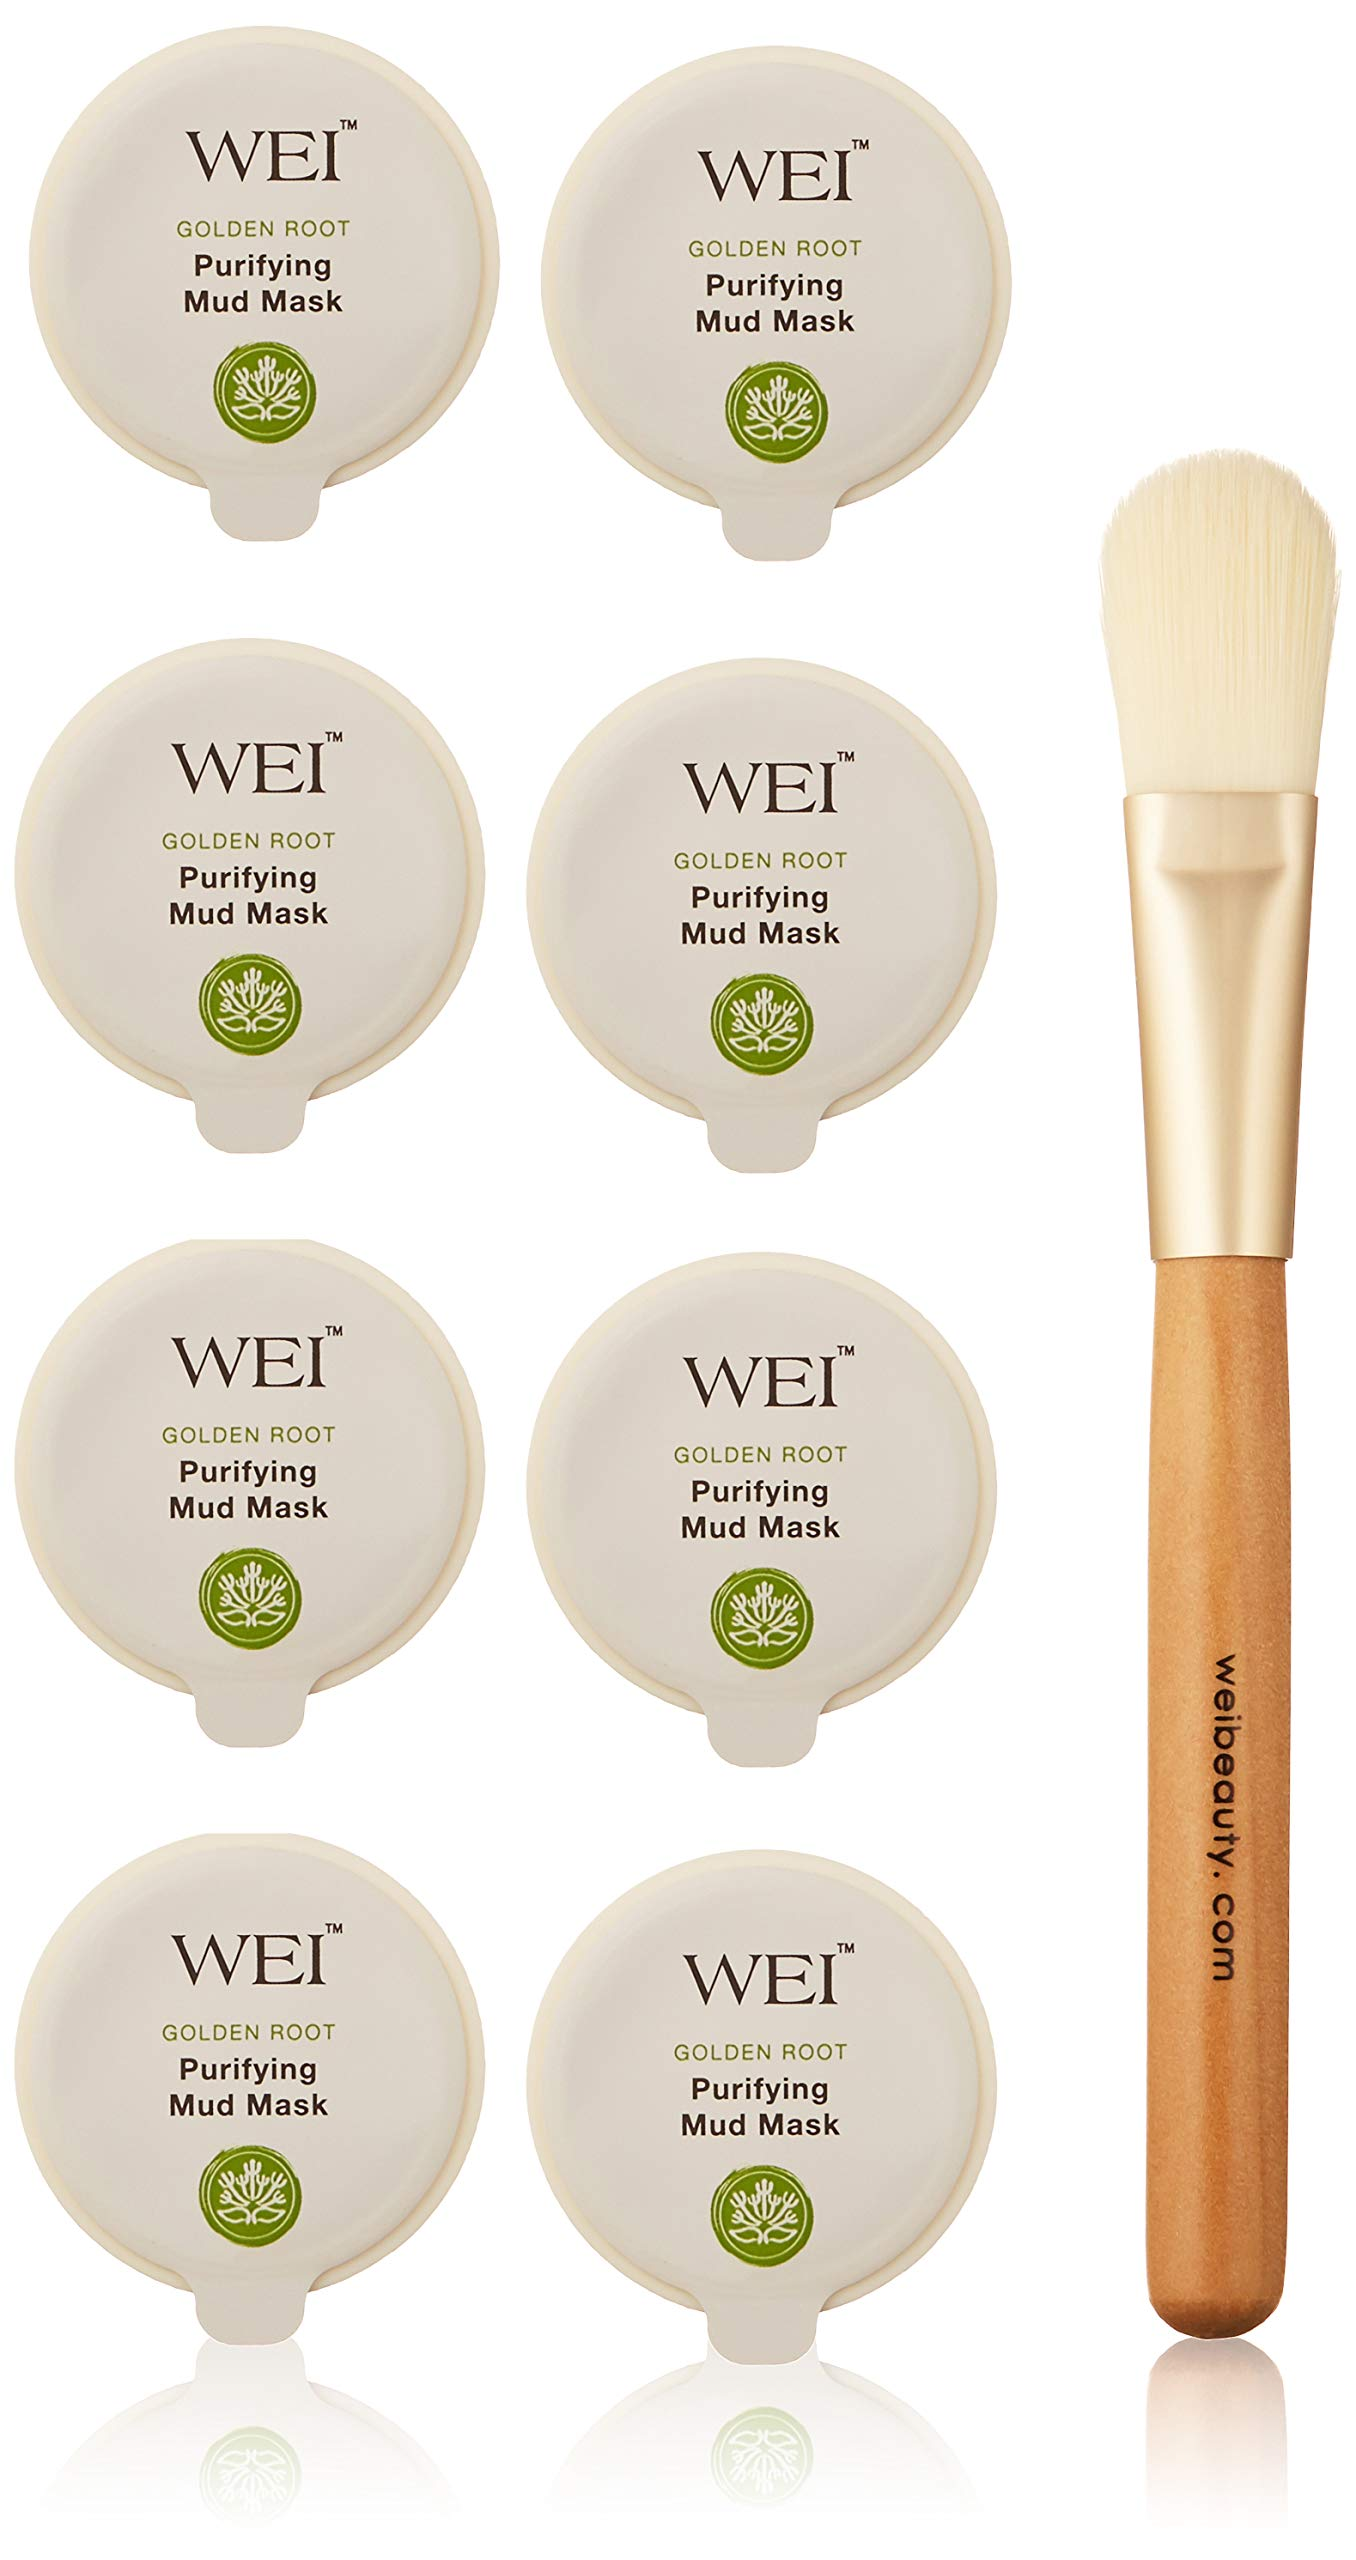 Wei Golden Root Purifying Mud Mask 2.4 oz